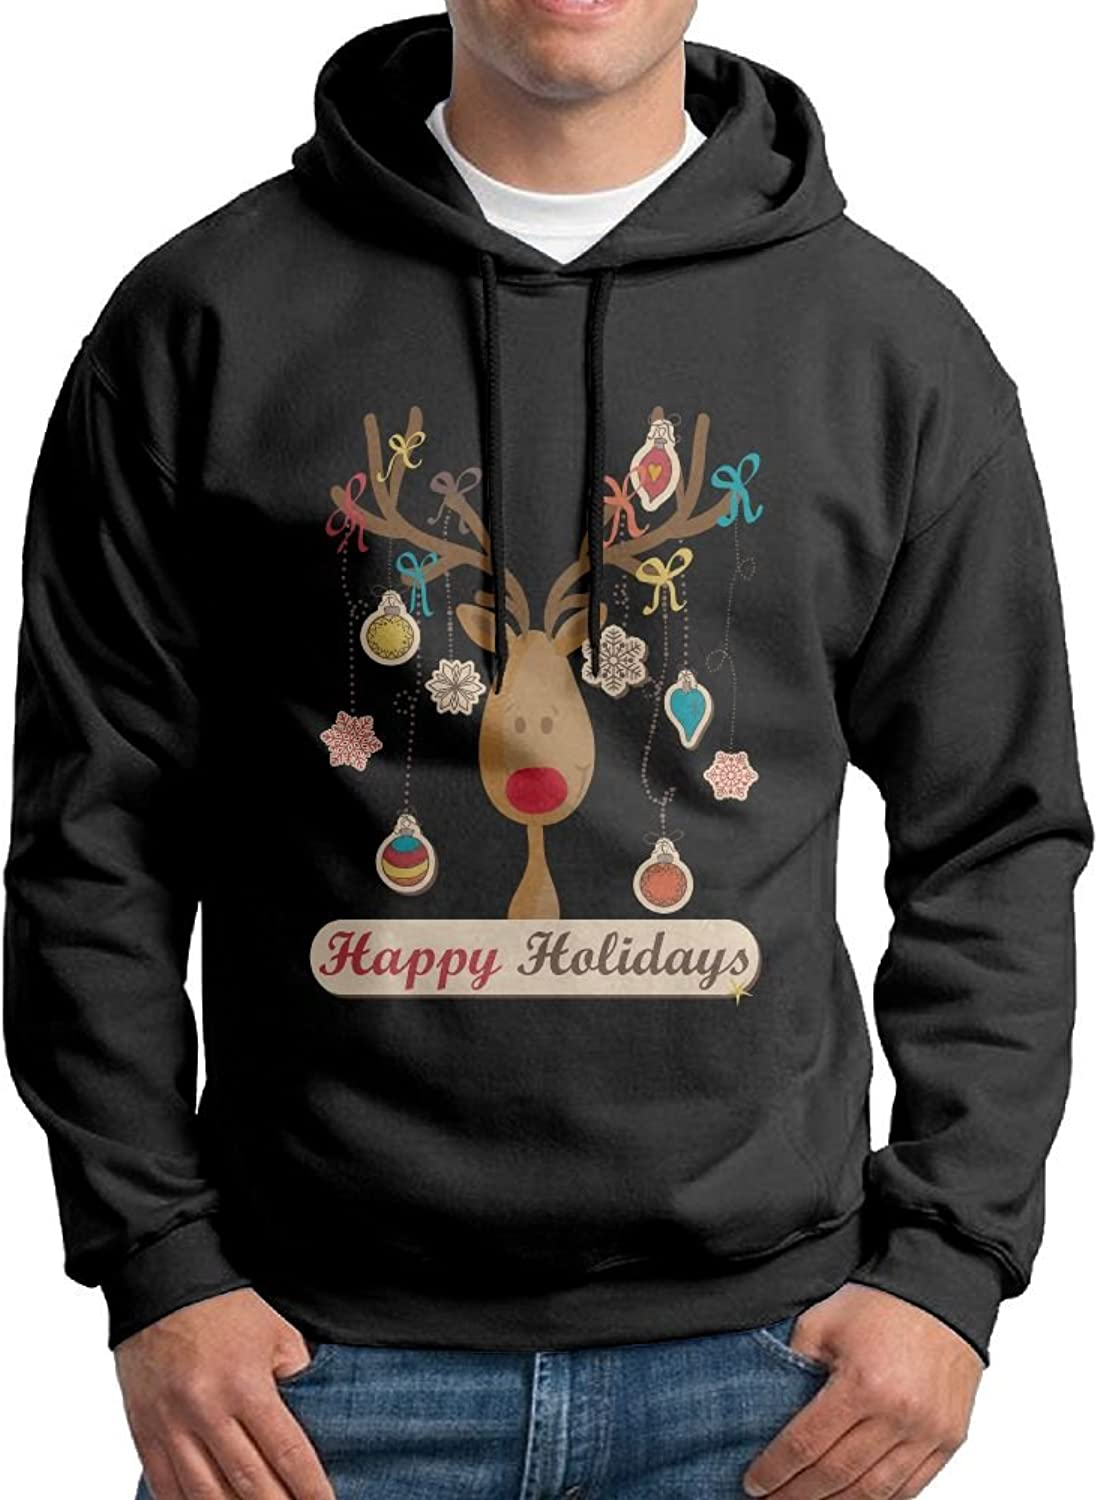 Fashion Men's Athletic Happy Holiday Moose Print Soft & Cozy Drawstring Hoodie Without Pocket Hooded Sweatshirt White